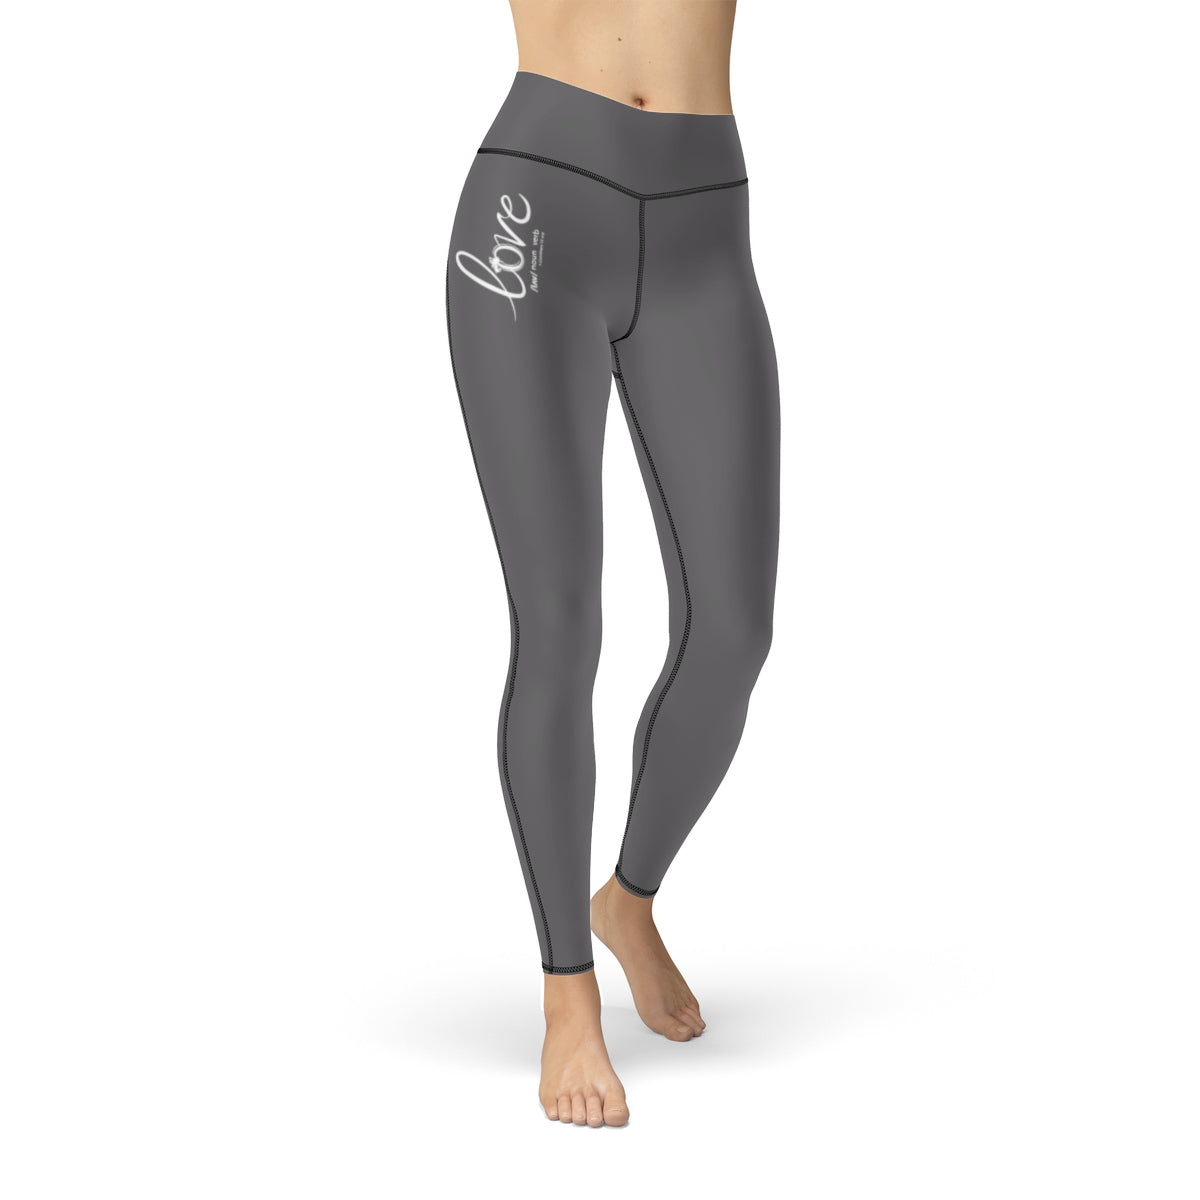 Odyssey Women's Love Sport Leggings - Grey